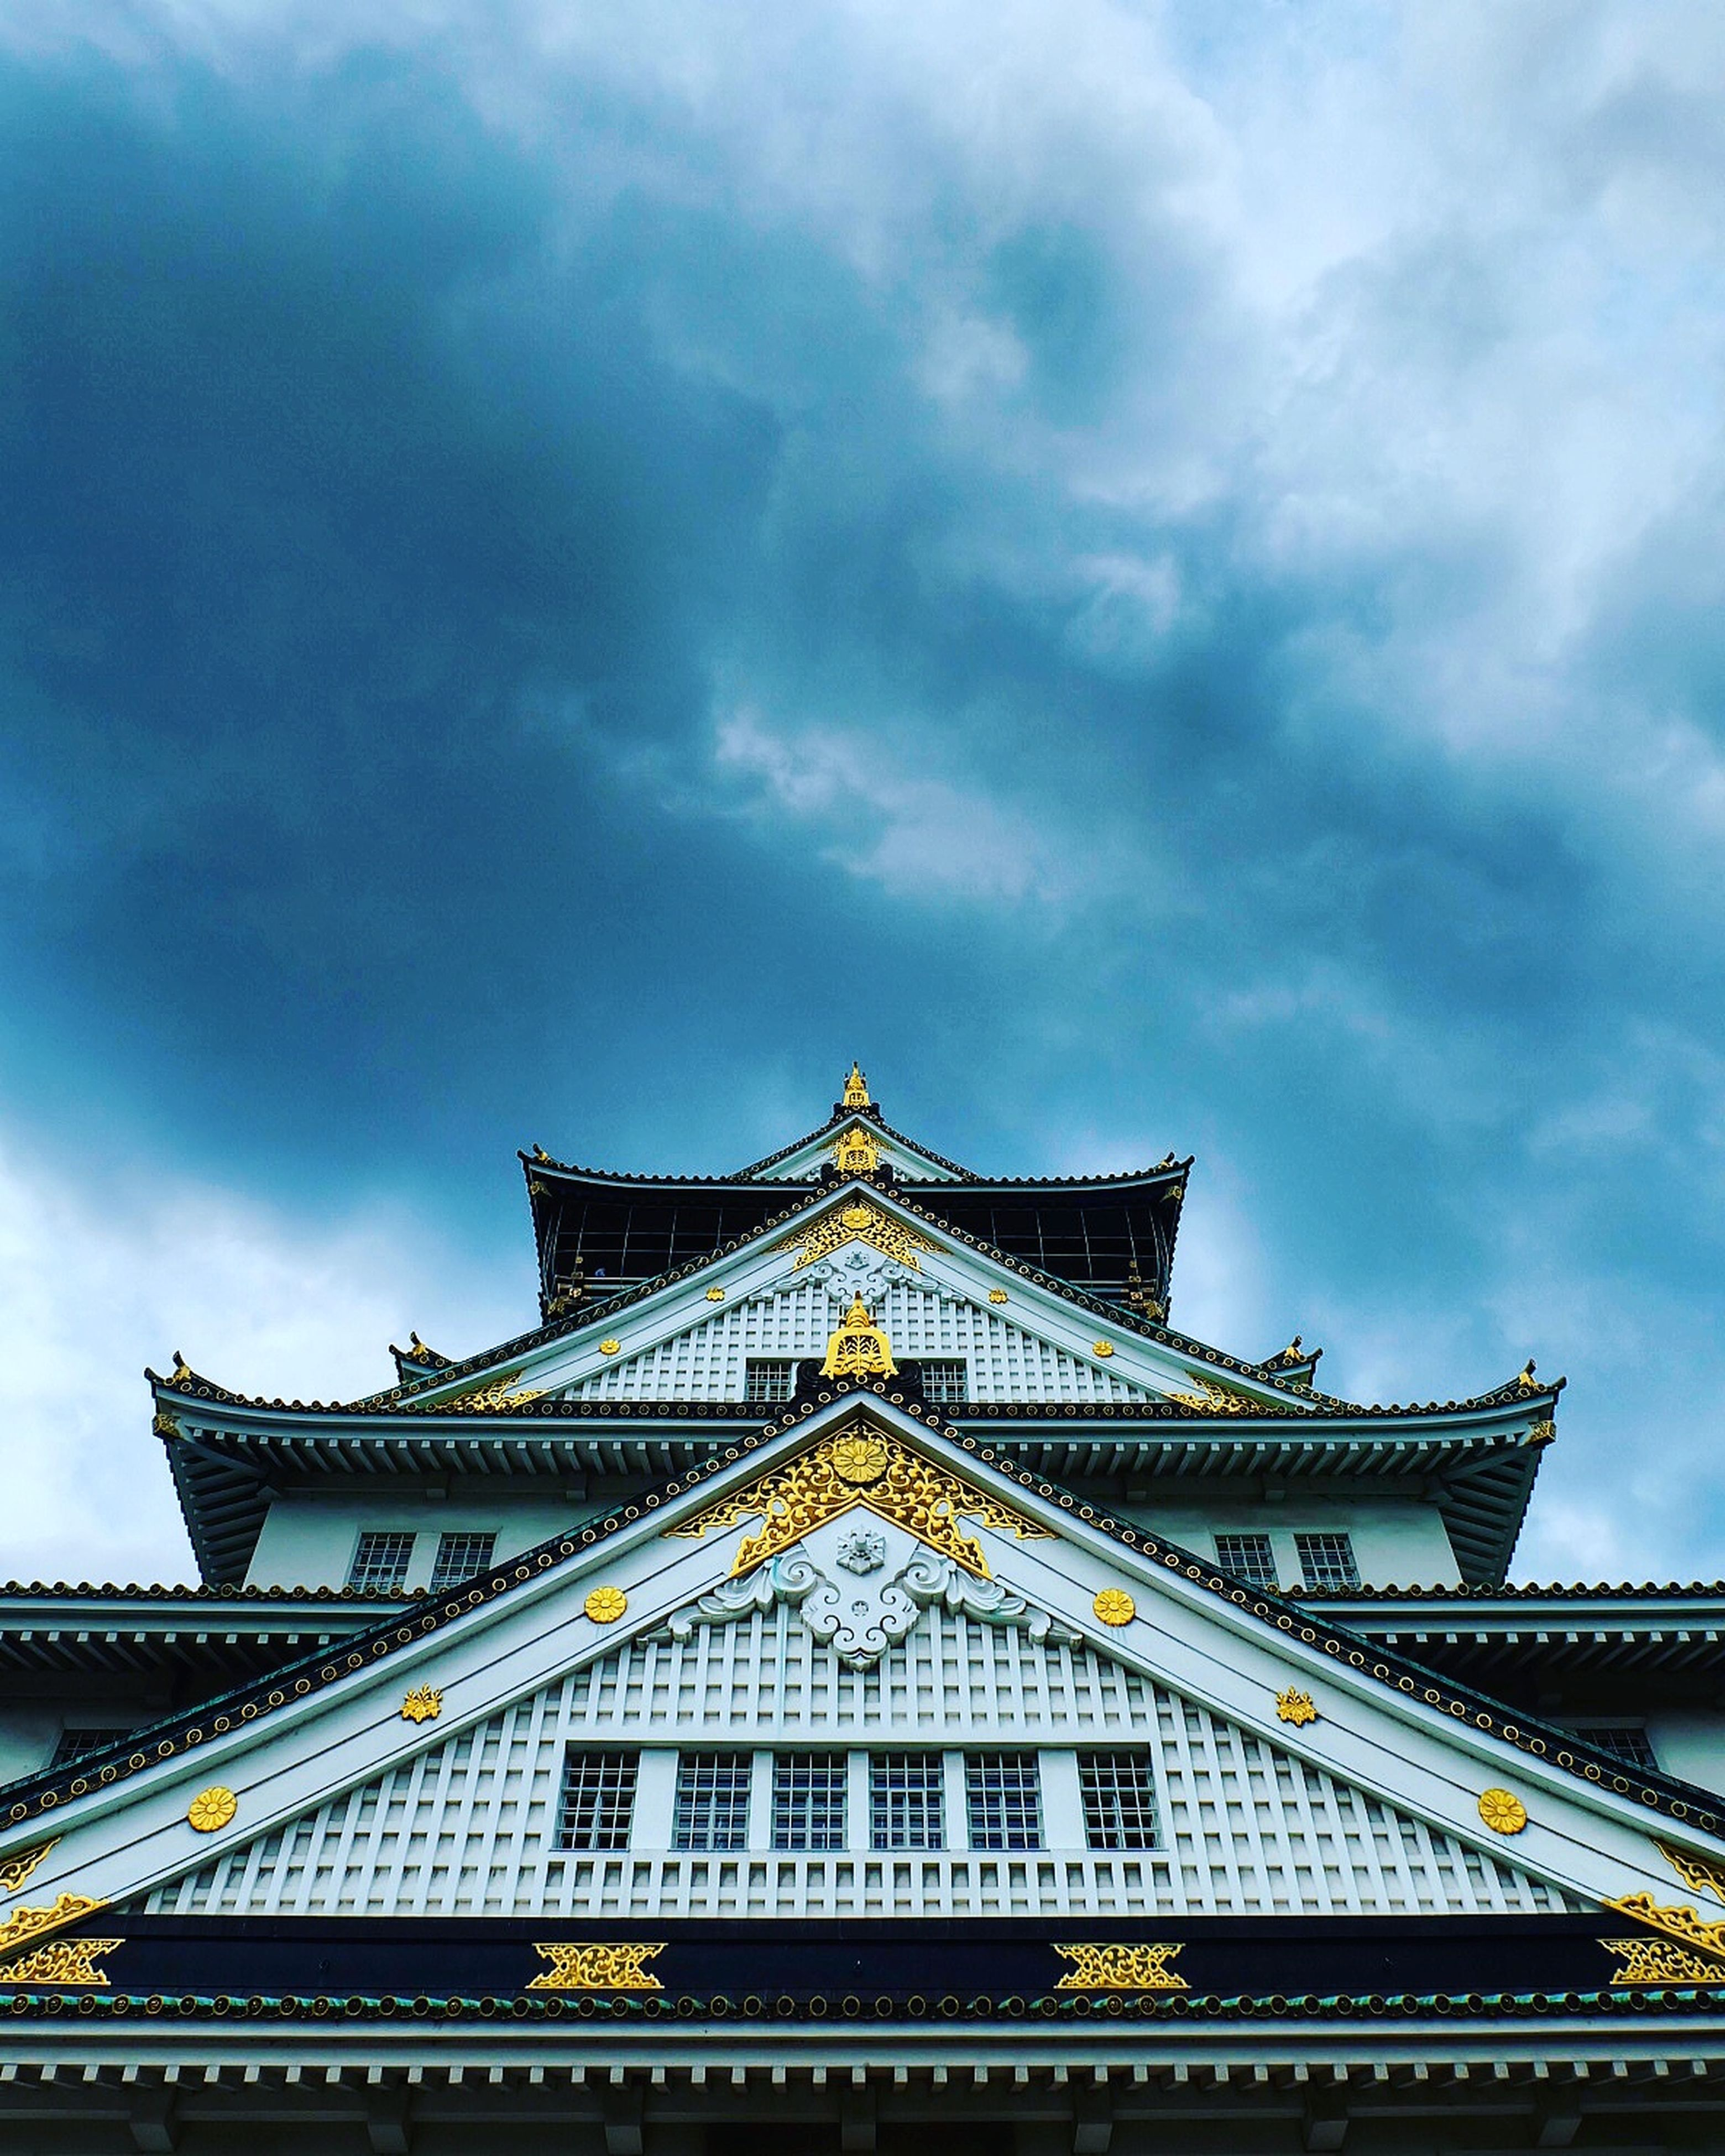 architecture, built structure, building exterior, low angle view, travel destinations, sky, high section, tourism, architectural feature, famous place, roof, pagoda, place of worship, cloud - sky, temple - building, blue, cloudy, outdoors, culture, arch, history, gothic style, traditional